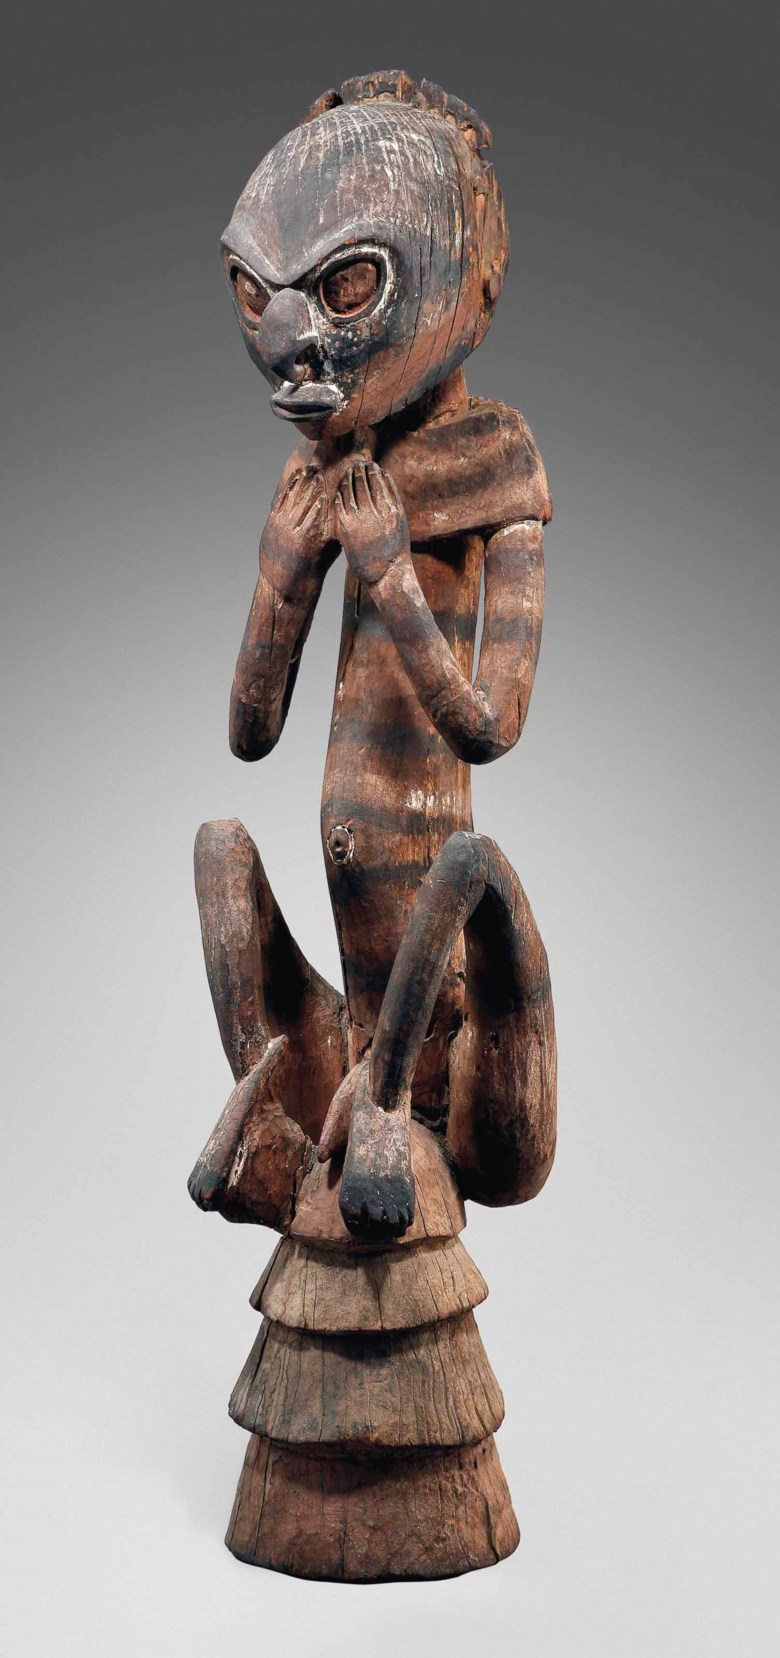 Aceremonial roof figure, Middle Sepik, Yuat river, Papua New Guinea, 1600-1890. Height 41¾ in(106 cm). Sold for €2,505,500 on 19 June 2013 at Christie's in Paris